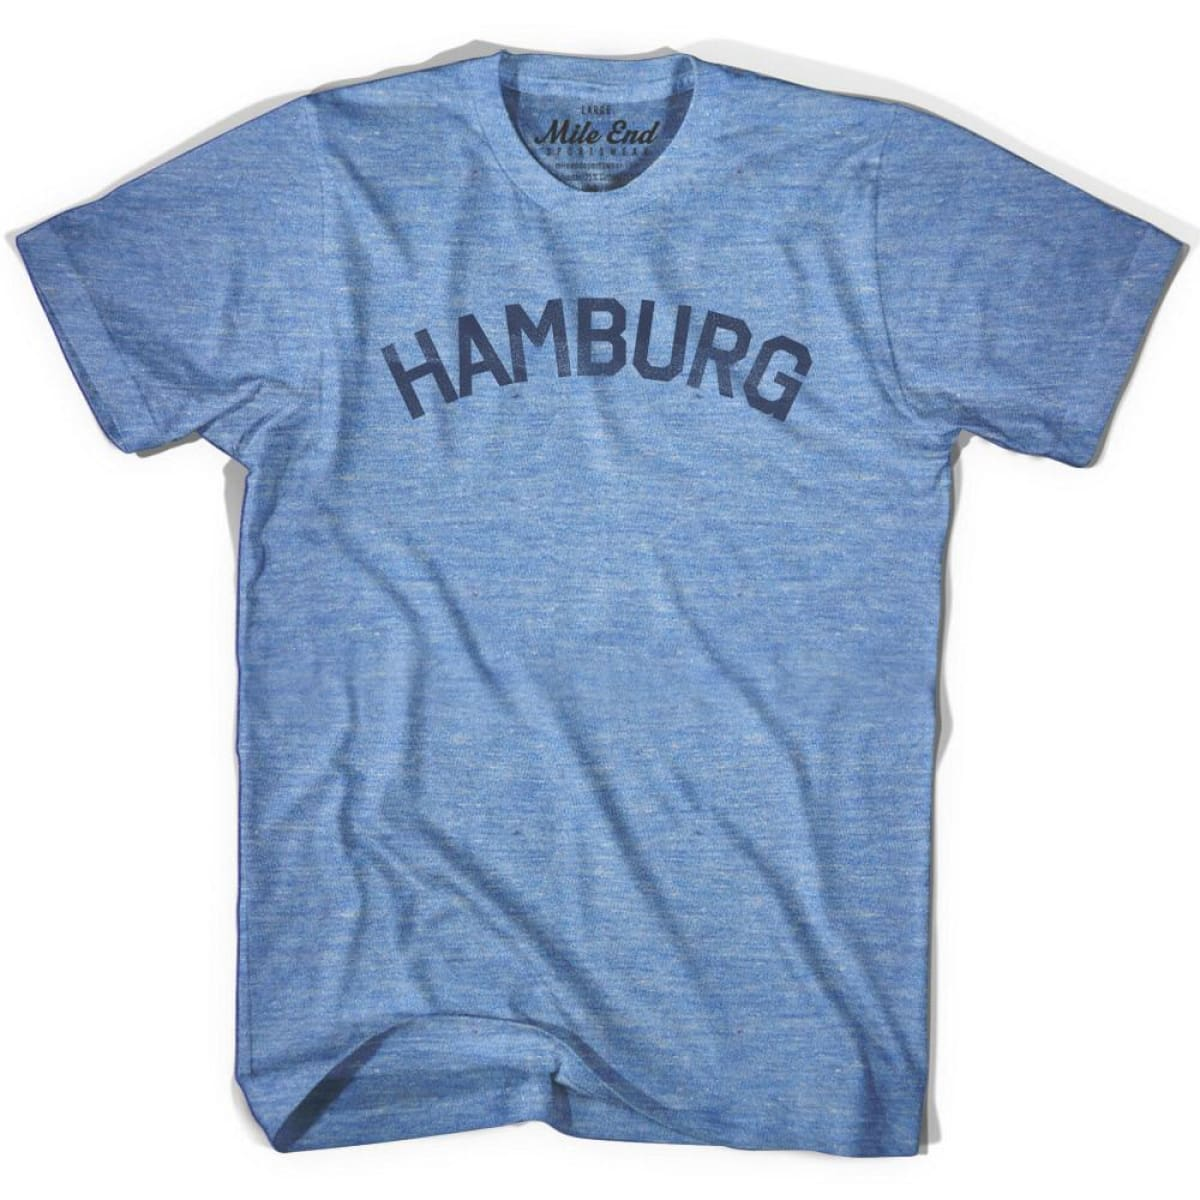 Hamburg City Vintage T-shirt - Athletic Blue / Adult X-Small - Mile End City